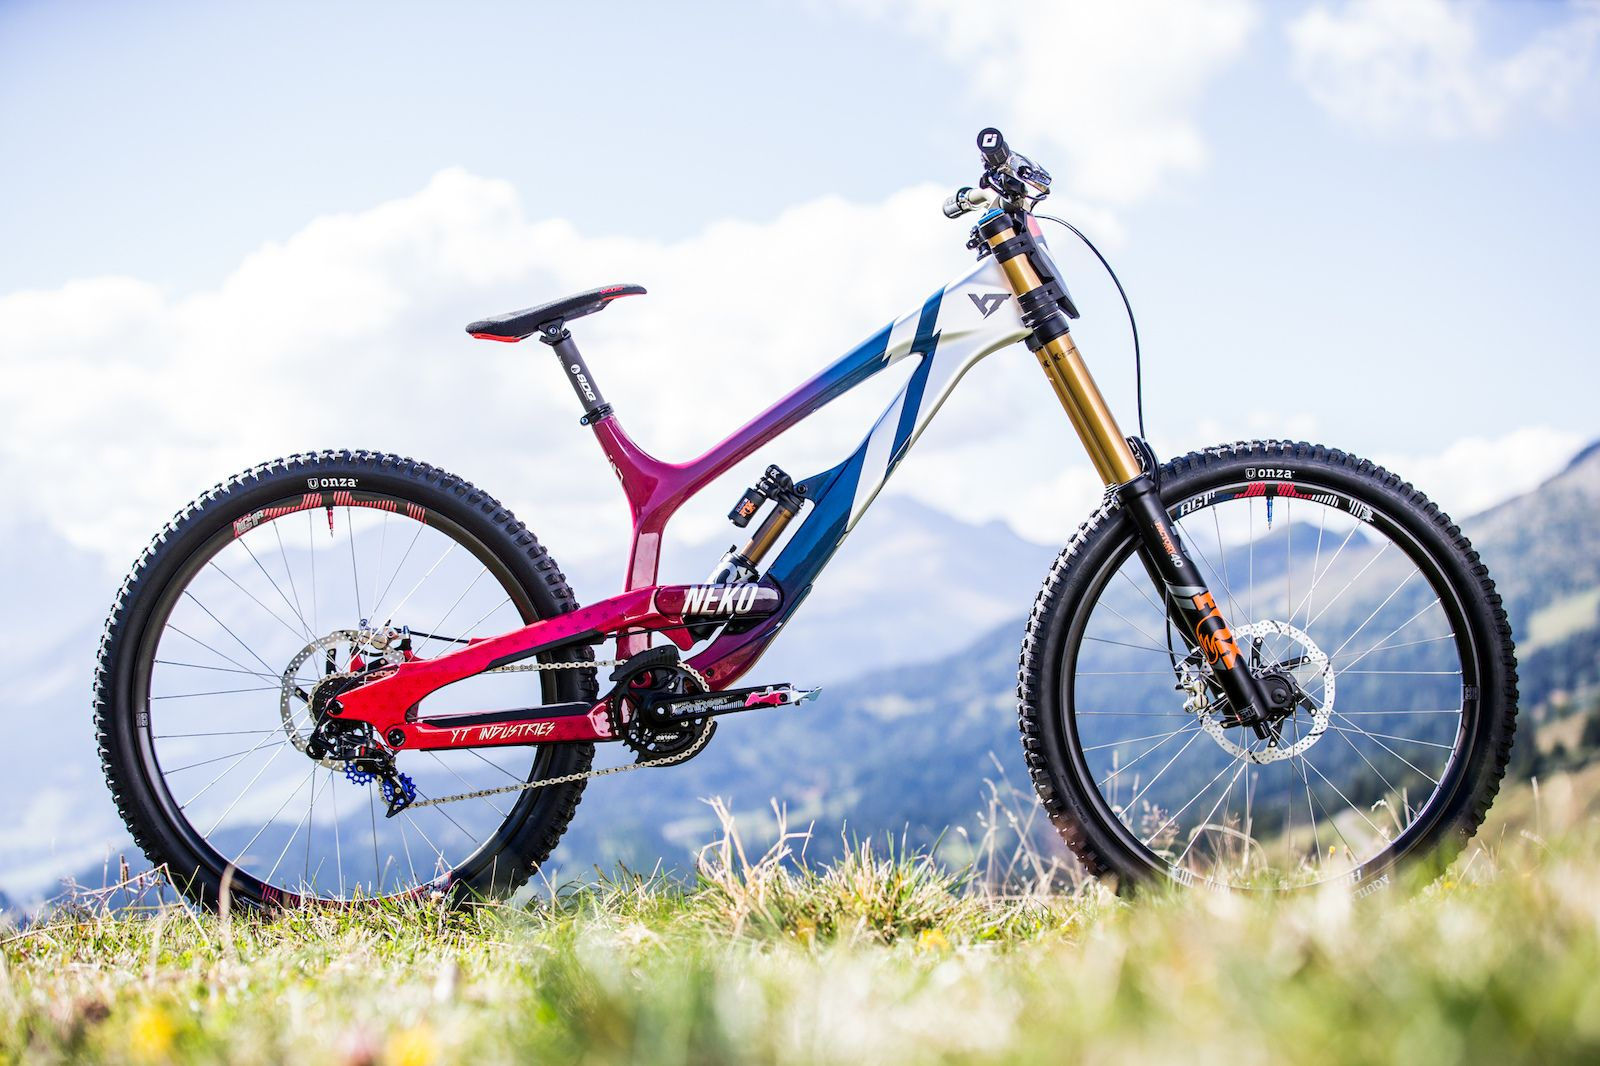 Raffle for a Cause: Neko Mulally's World Champs Bike is for